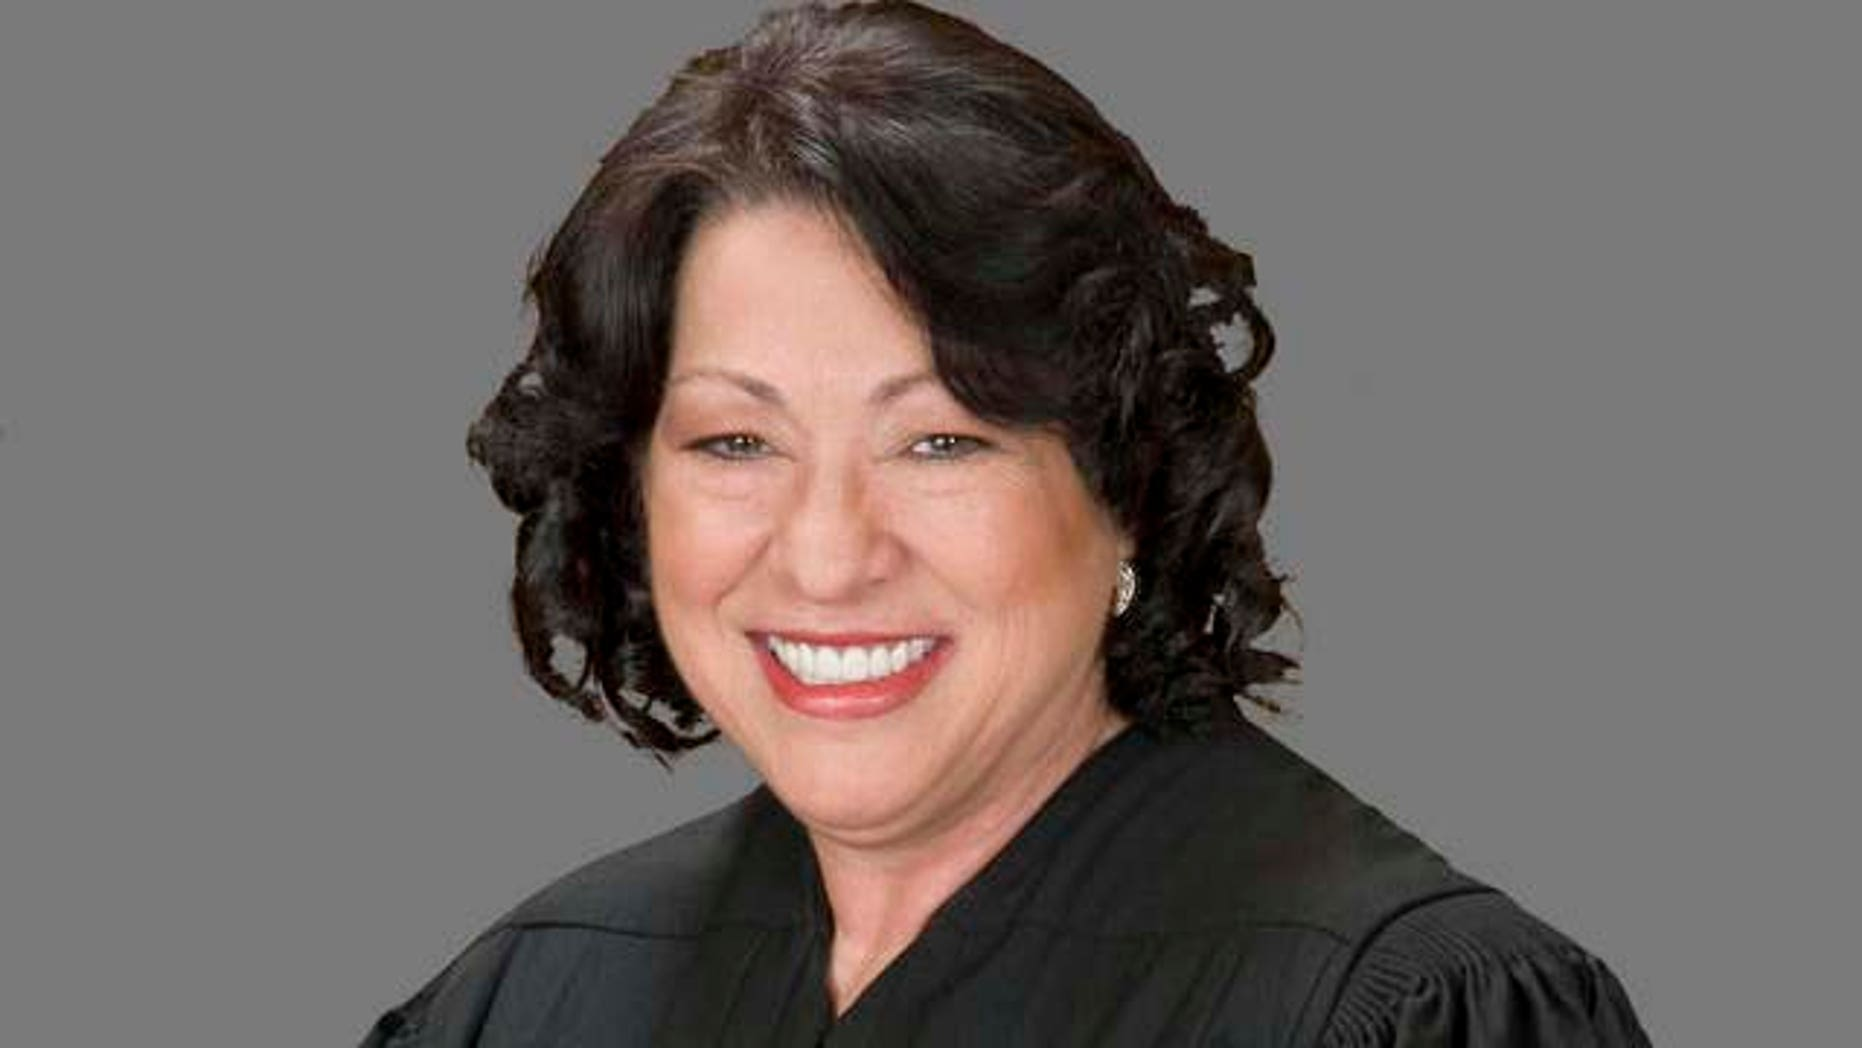 This undated image released by the Supreme Court of the United States on Tuesday, Sept. 8, 2009 shows Justice Sonia Sotomayor is seen in her official portrait. (AP Photo/Collection of the Supreme Court of the United States, Steve Petteway)